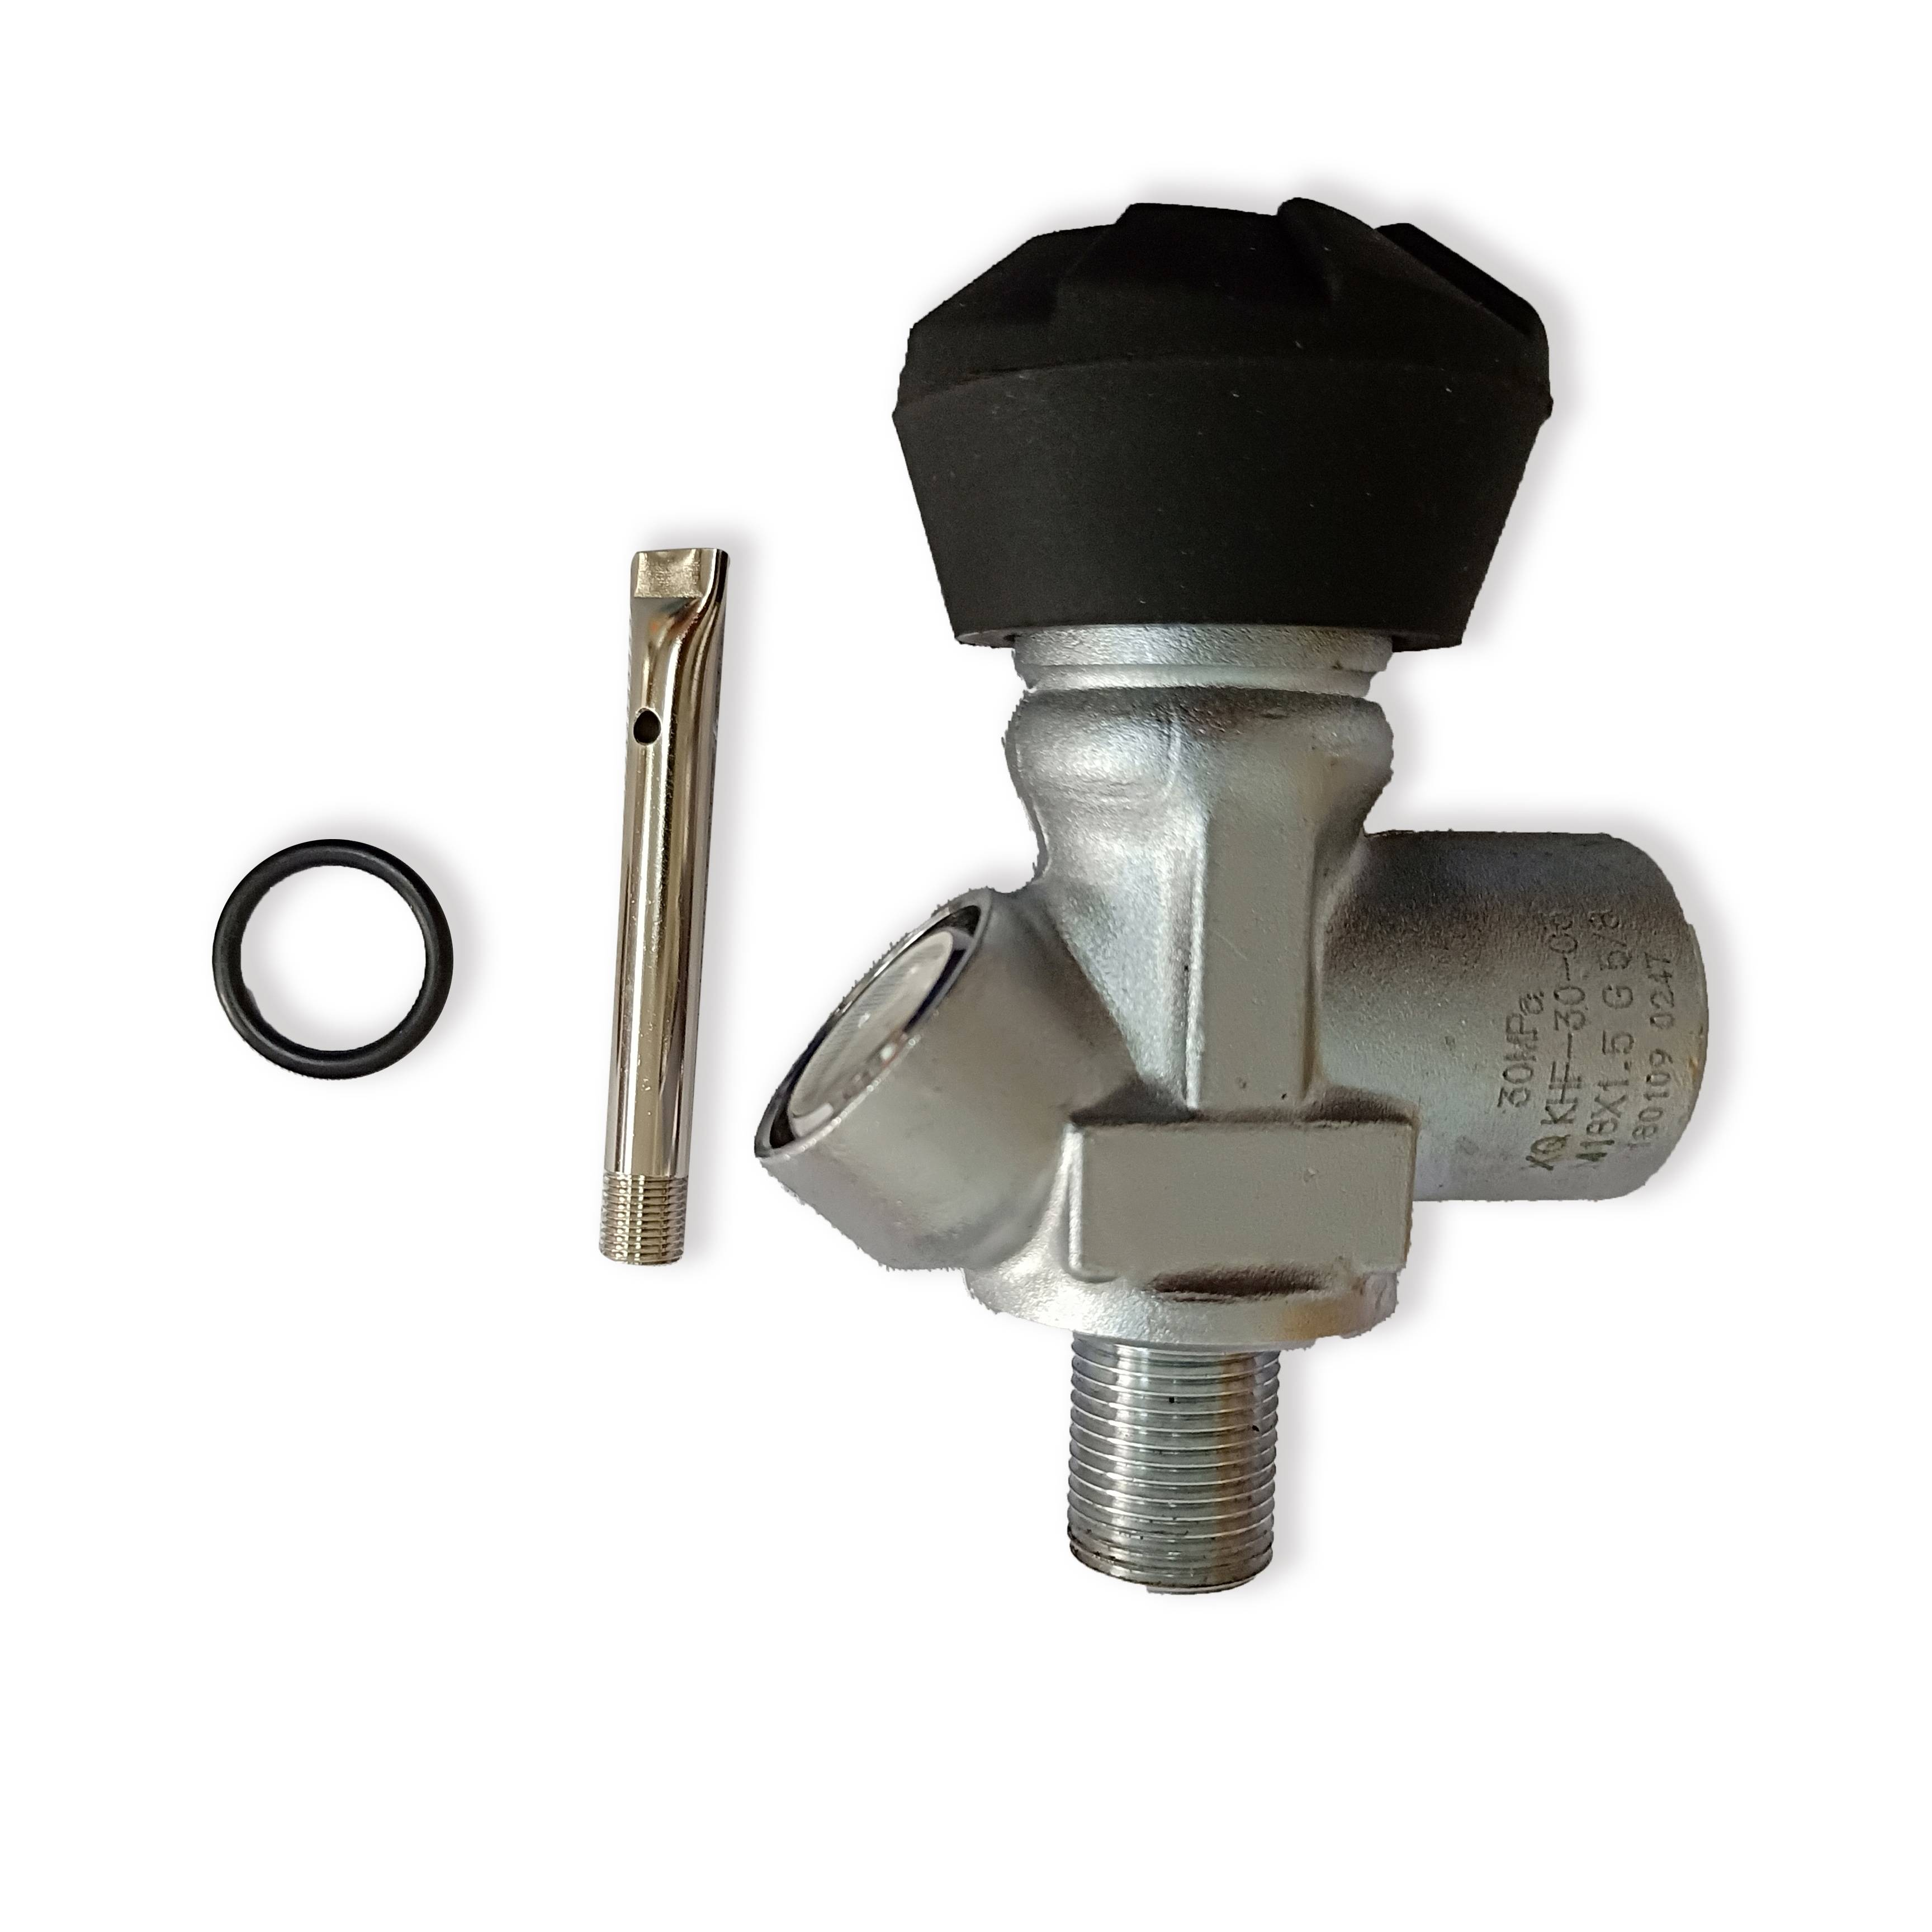 AC931 Acecare Valve For Scuba Tank High Pressure Cylinder Pcp Air Tank Compressed Air Carbon Fiber Tank Airforce Condor 4500psi